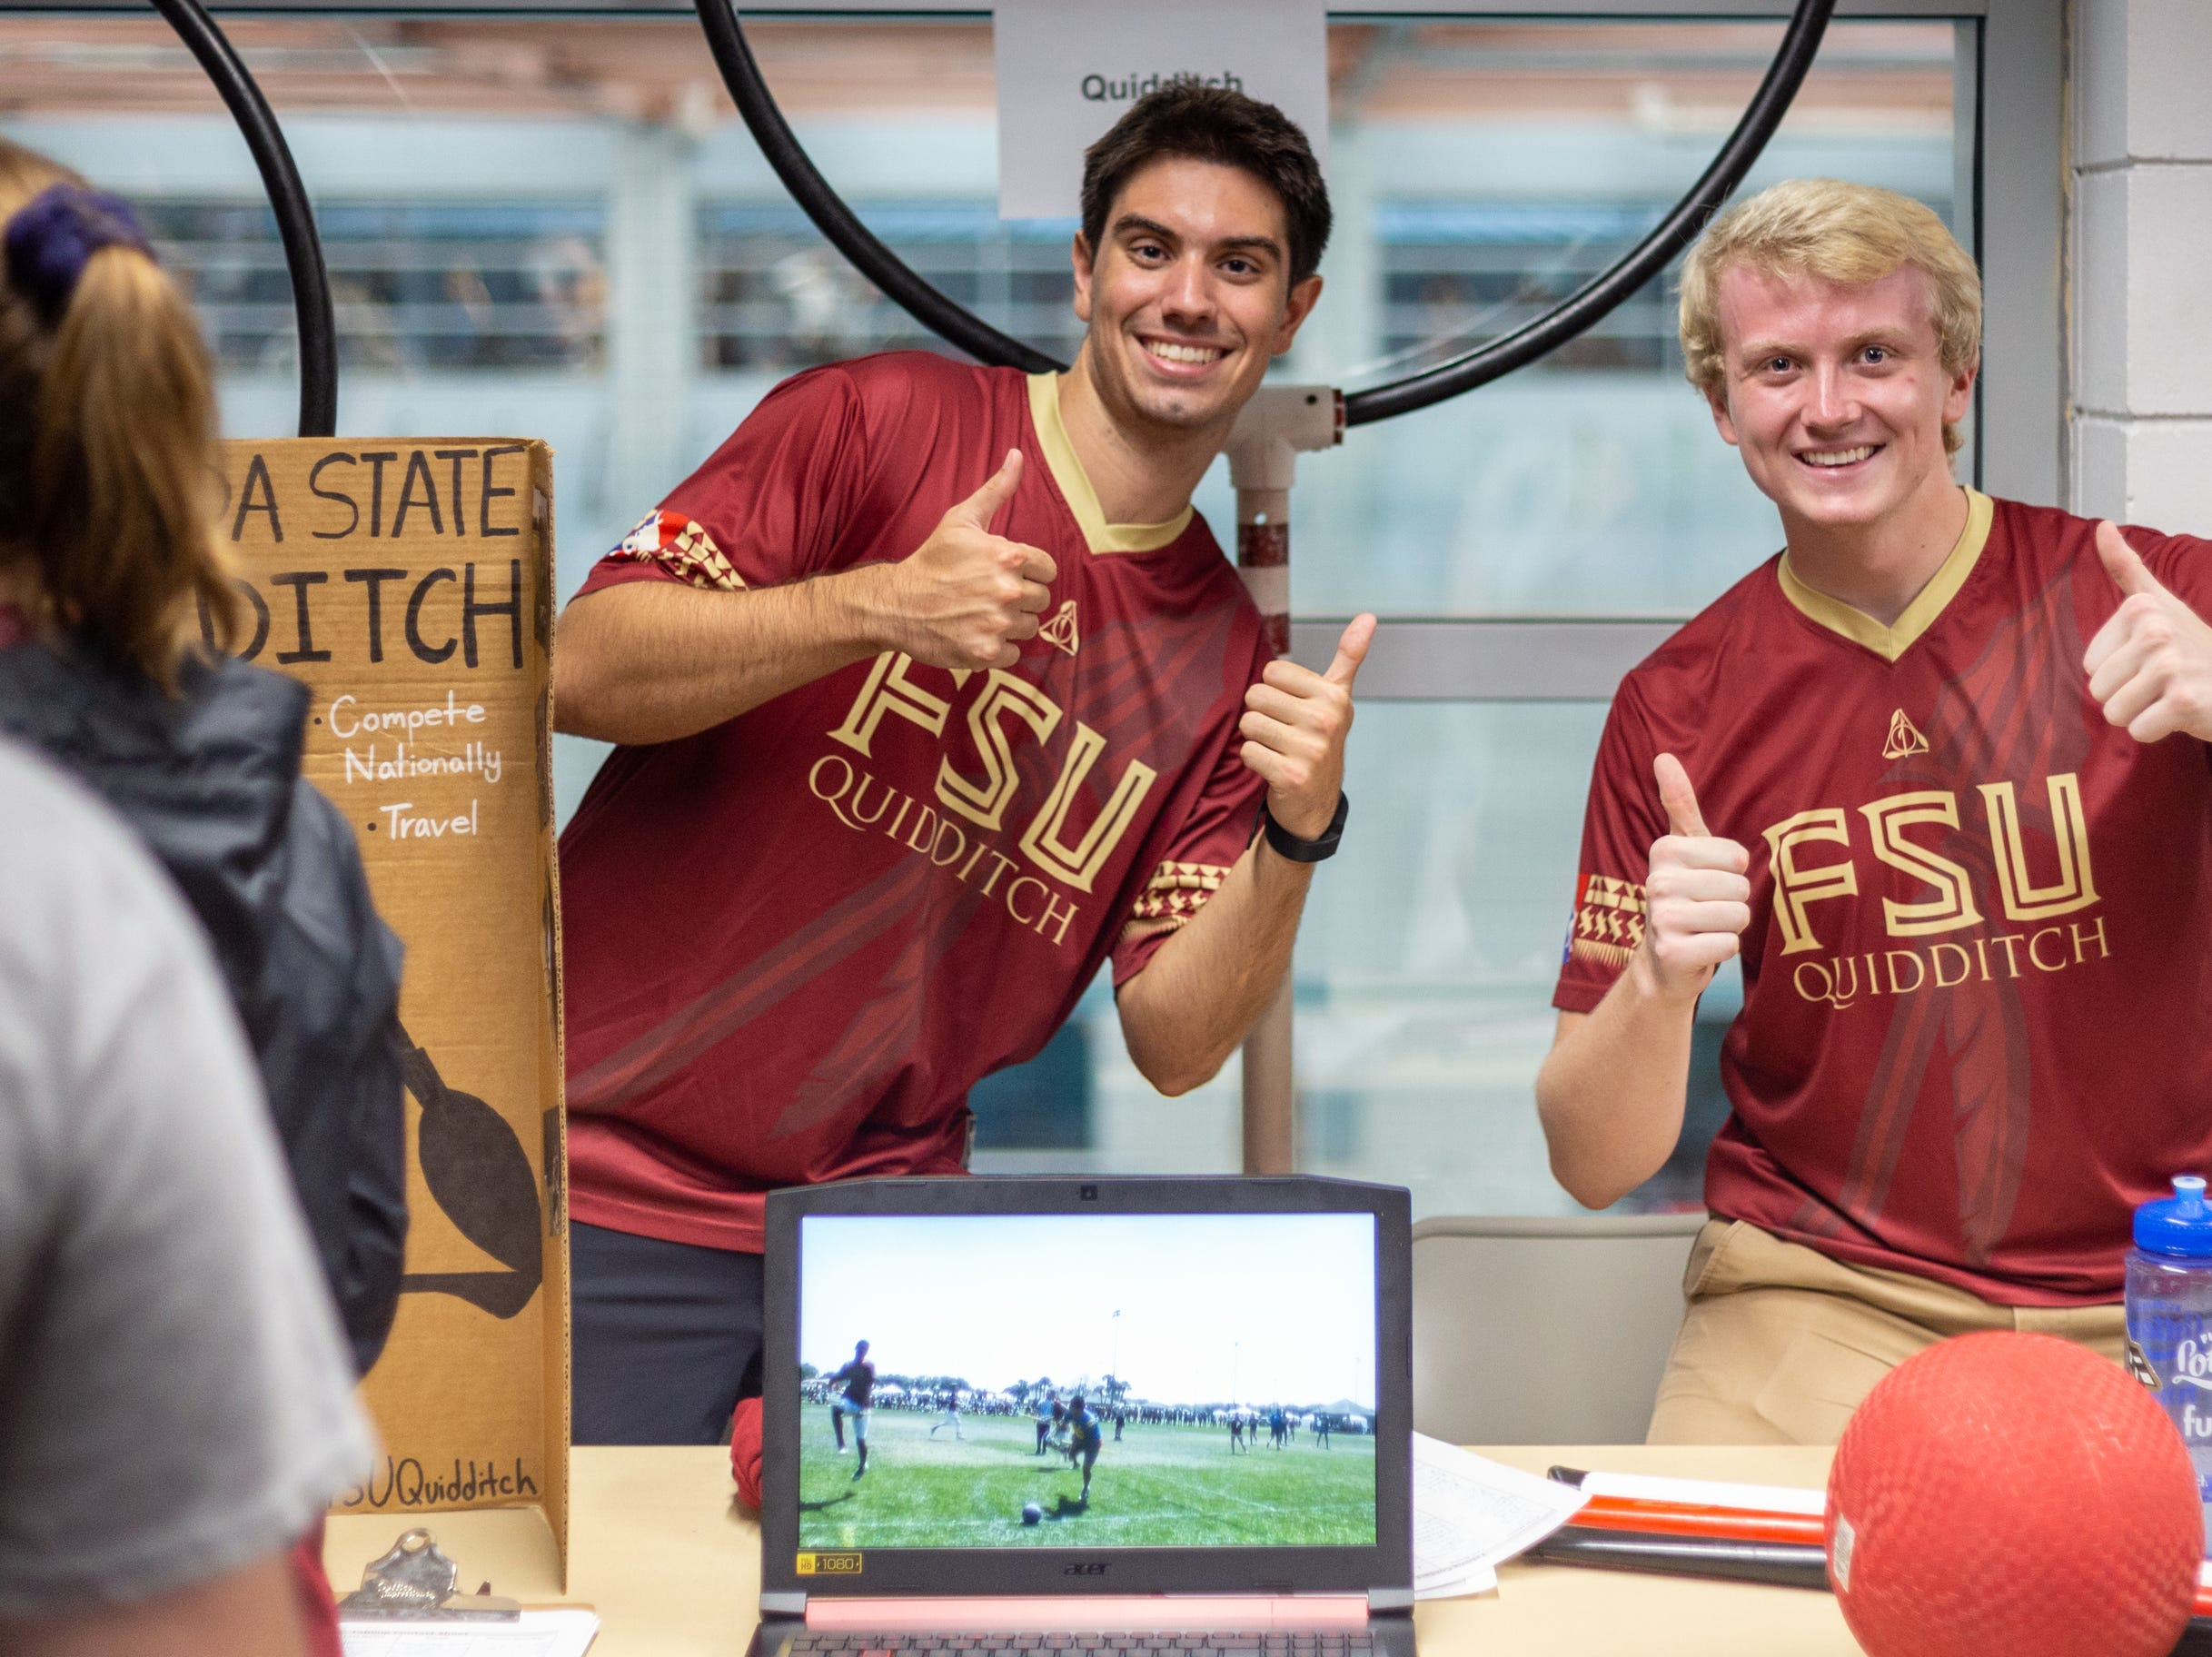 FSU Quidditch club members, James Pulson (right) and Andrew Ibarra (left), give a double thumbs up for club sports on Tuesday at FSU's Involvement Fair in the Leach Center.